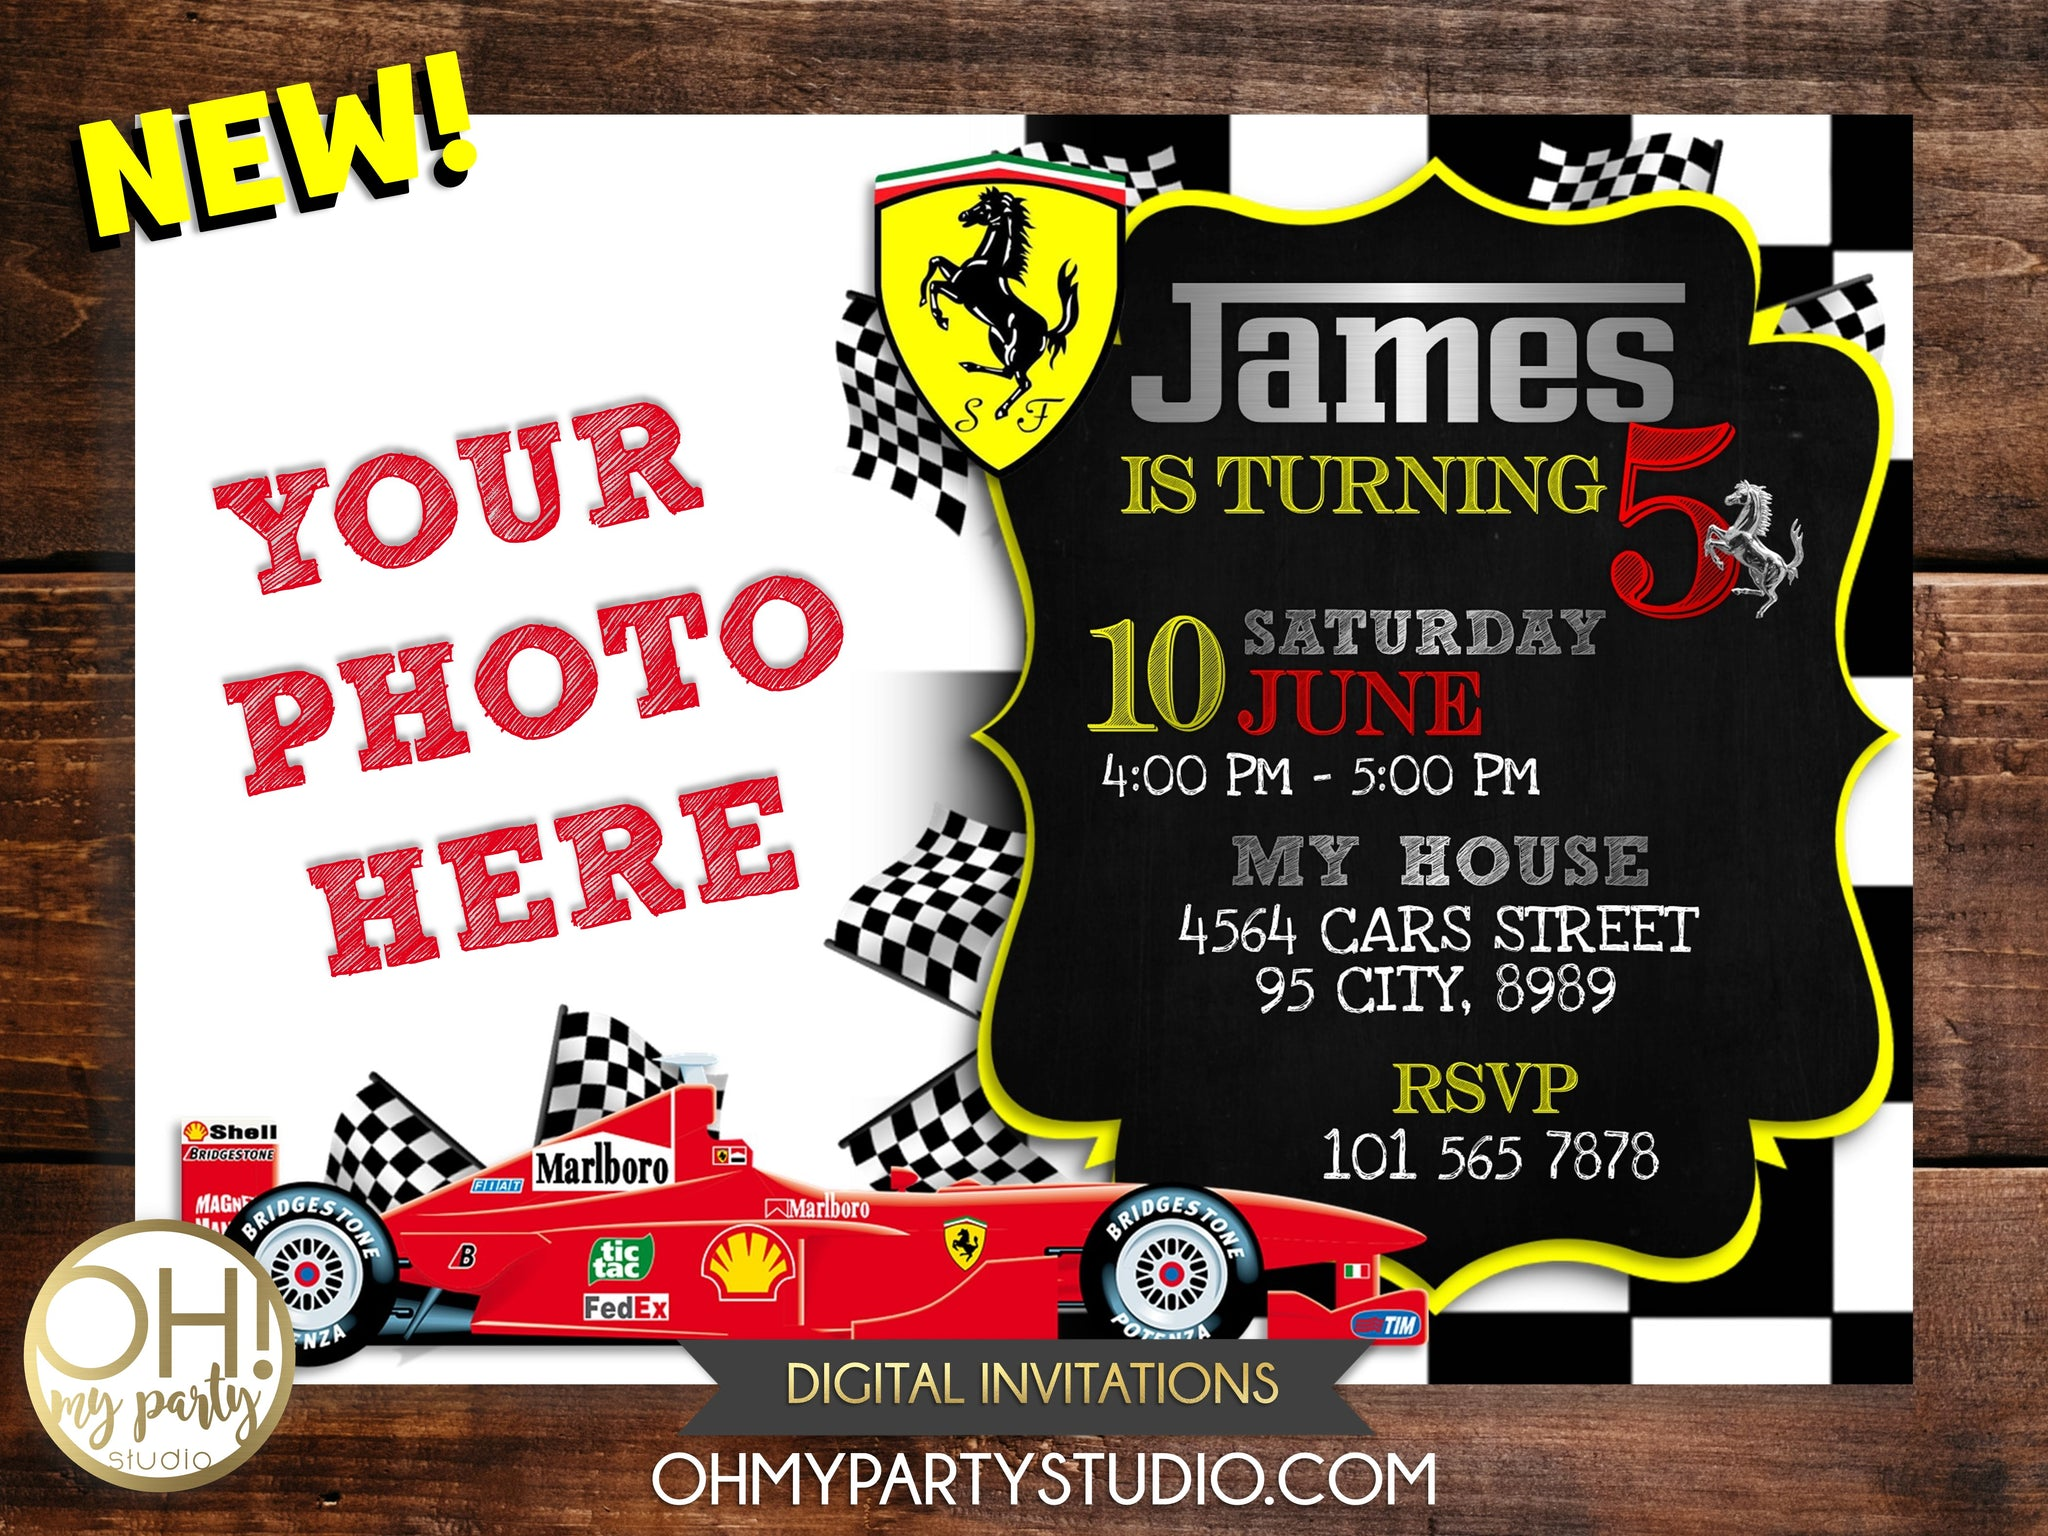 FERRARI INVITATION, FERRARI BIRTHDAY, FERRARI INVITATIONS, FERRARI BIRTHDAY, FERRARI BIRTHDAY INVITATION, FERRARI PRINTABLES